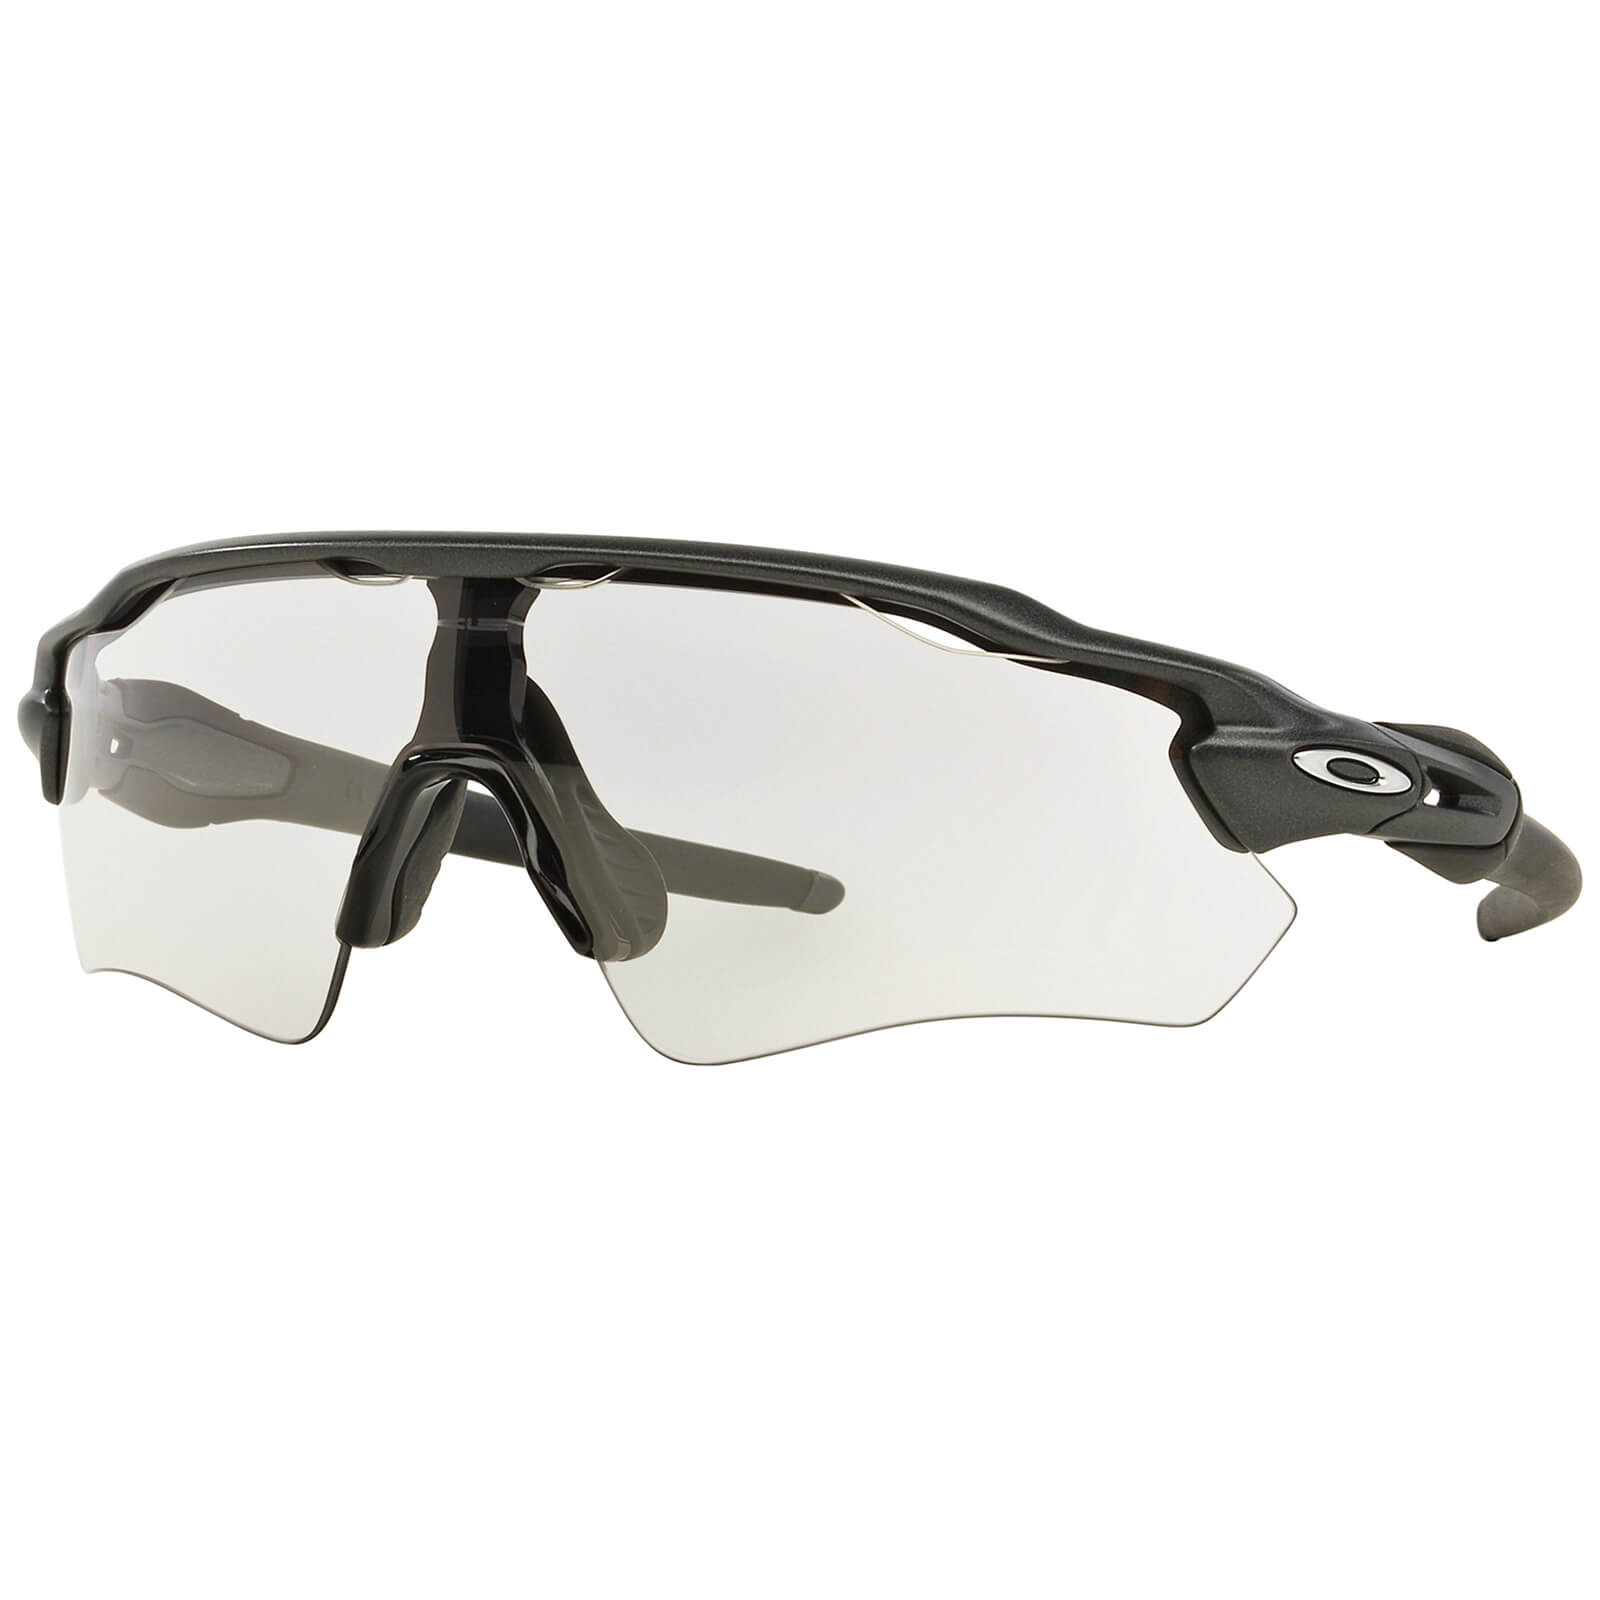 6ce6bca0ee Oakley Radar EV Path Photochromic Road Sunglasses - Black Iridium ...